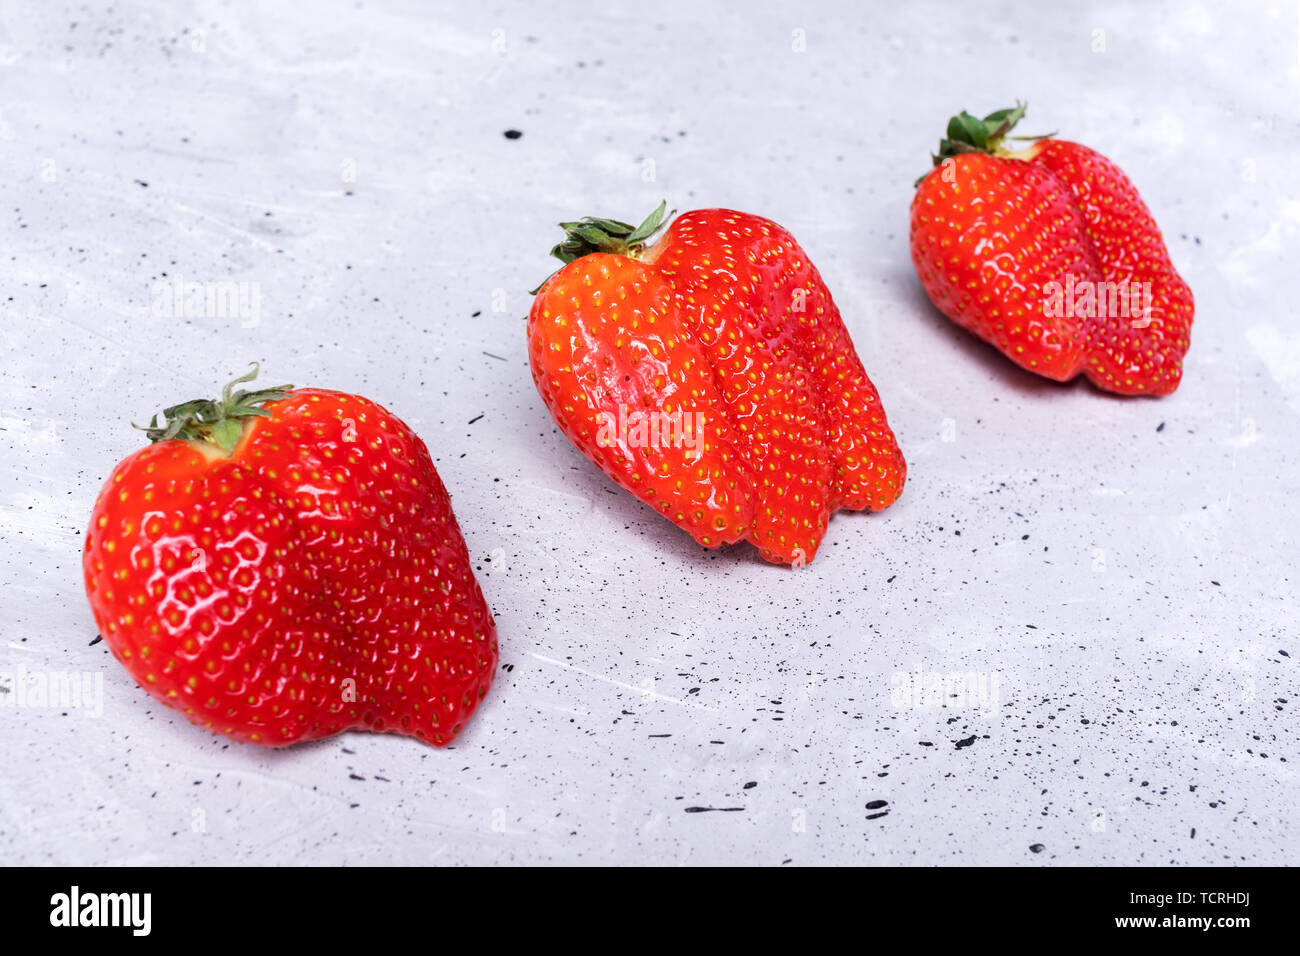 Three ugly strawberries are lying diagonally on grey concrete background.  - Stock Image